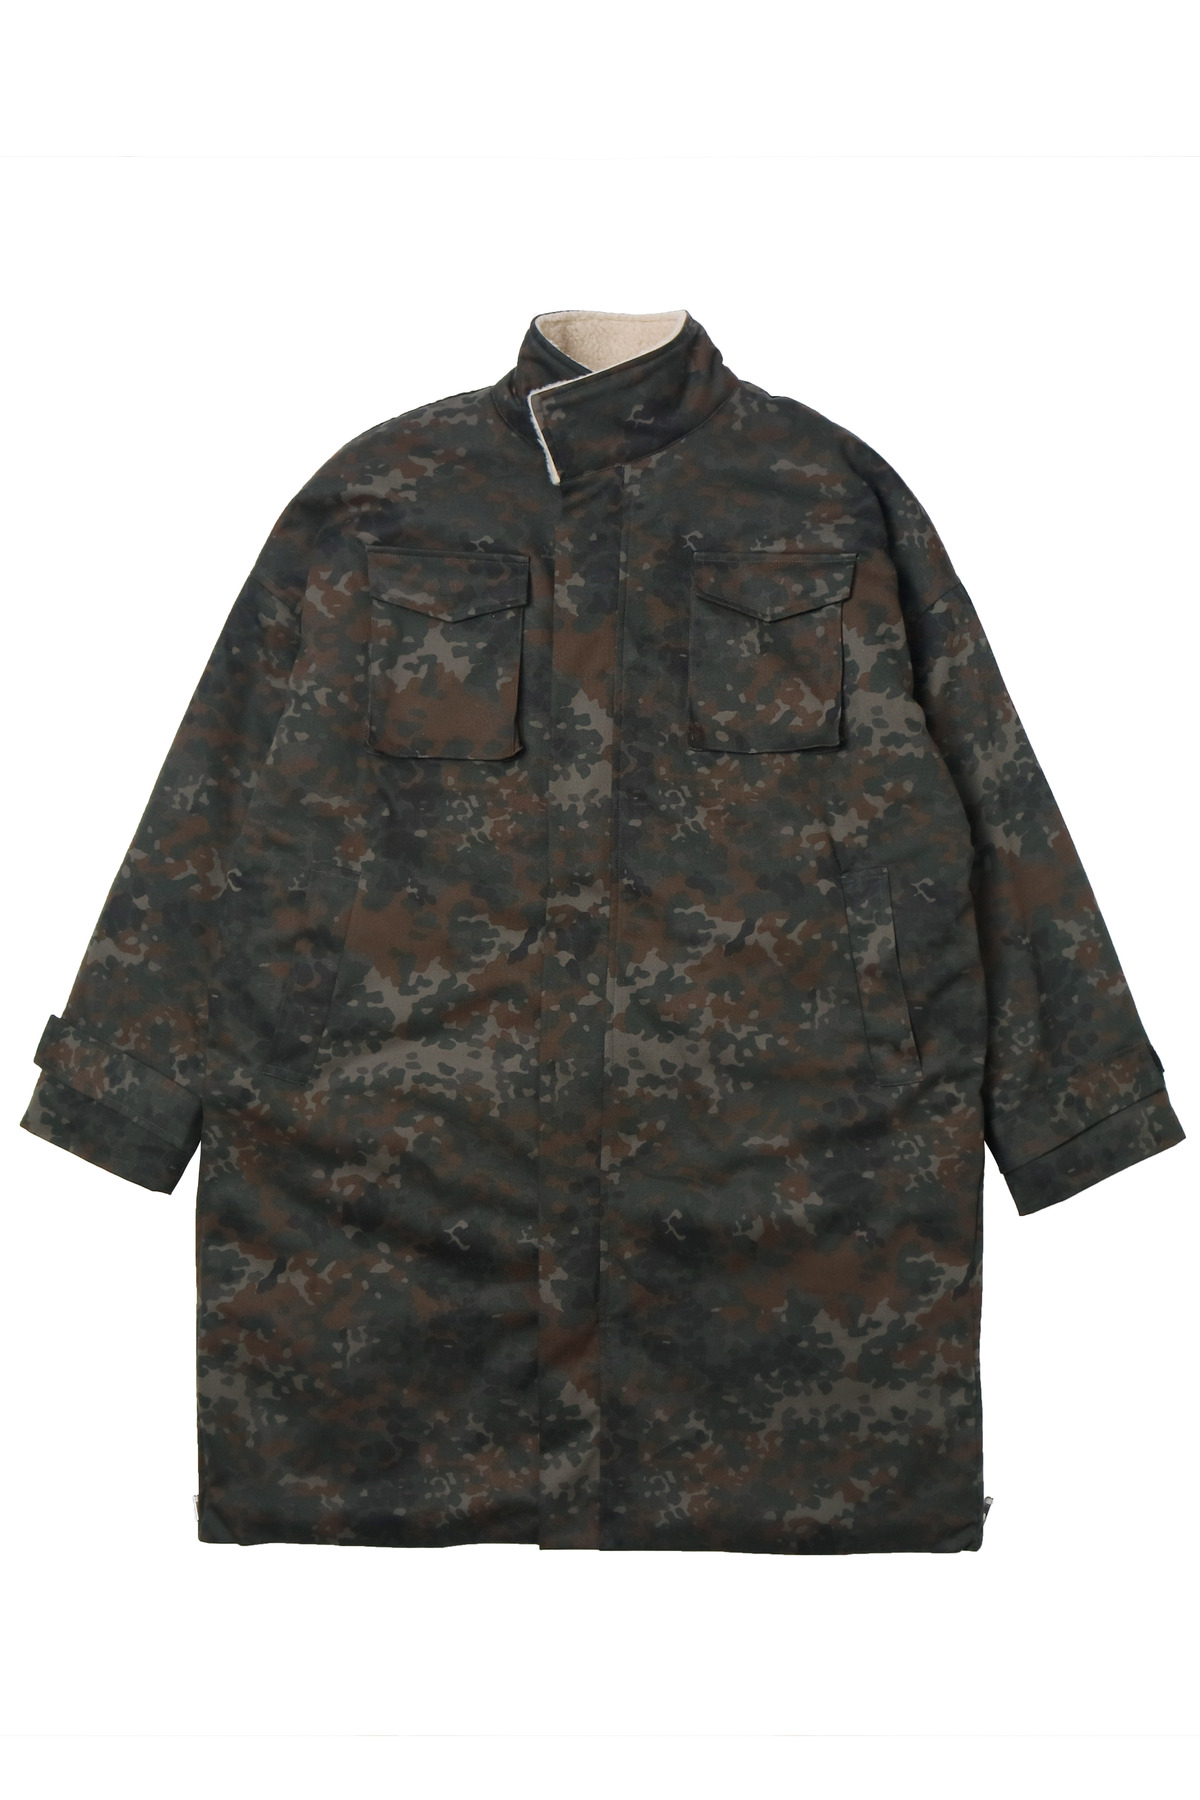 CAMO SHERPA SIDE ZIP PARKA